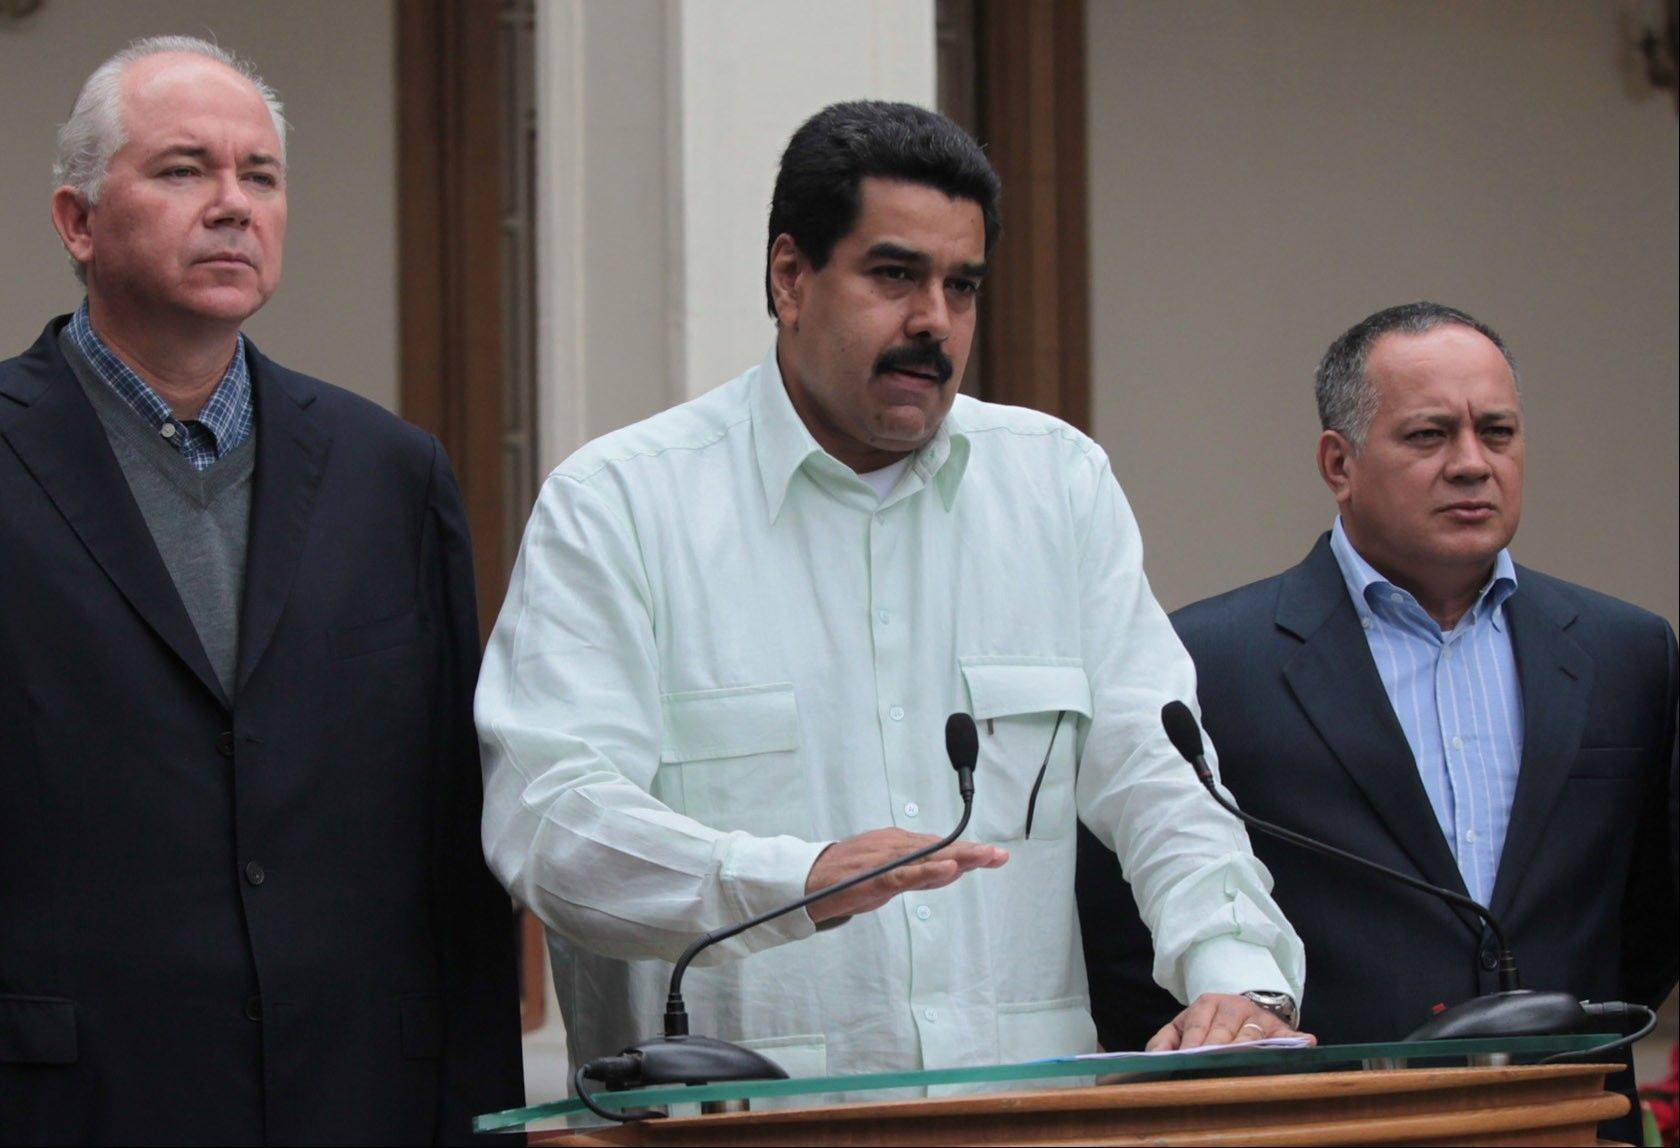 Venezuela's Vice President Nicolas Maduro, center, addresses the nation on live television flanked by Oil Minister Rafael Ramirez, left, and National Assembly President Diosdado Cabello at Miraflores presidential palace in Caracas, Venezuela, Wednesday, Dec. 12, 2012. Over the weekend, President Hugo Chavez named Maduro as his chosen political heir.